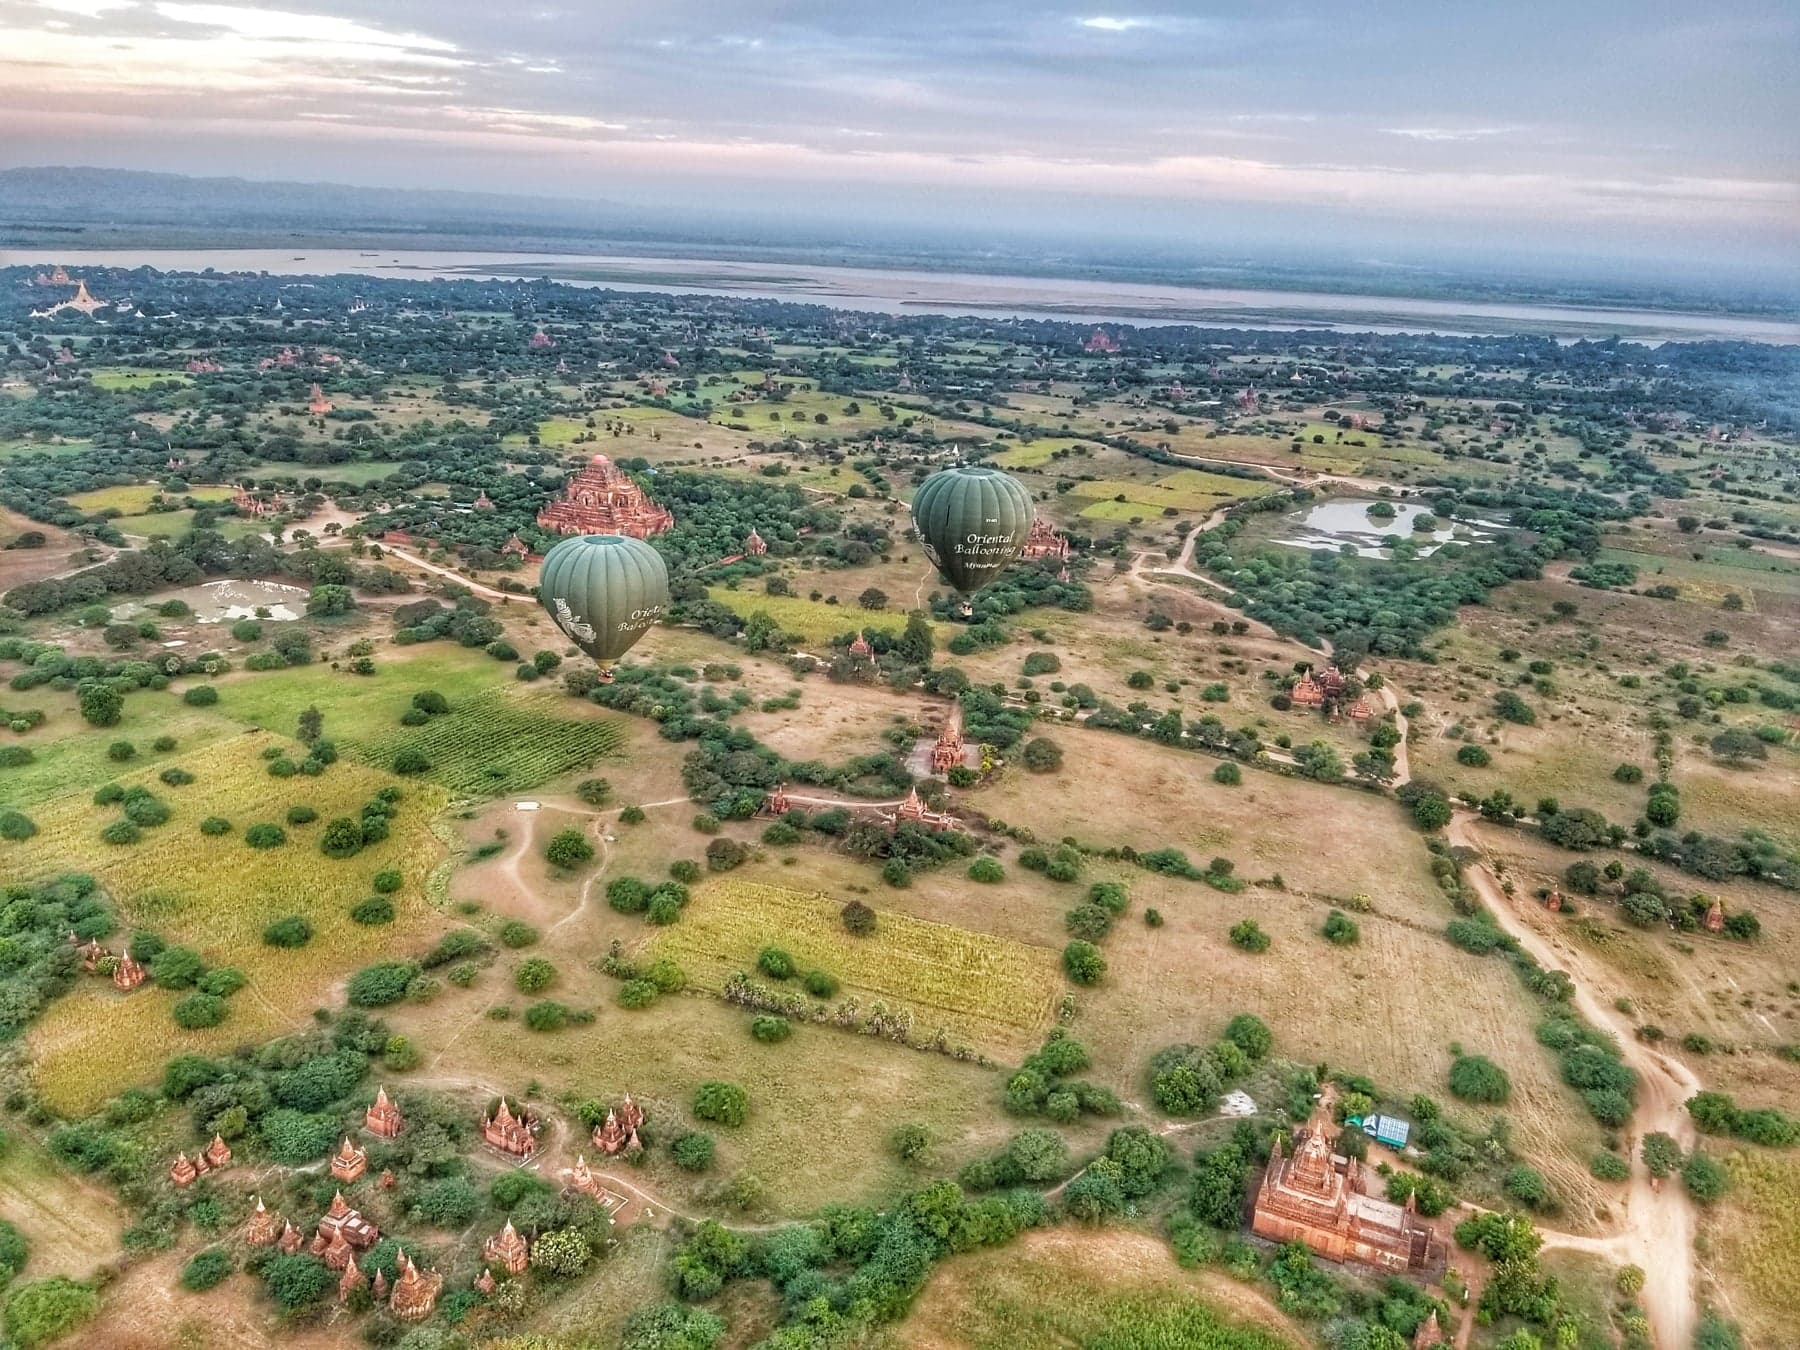 Bagan, Myanmar from above